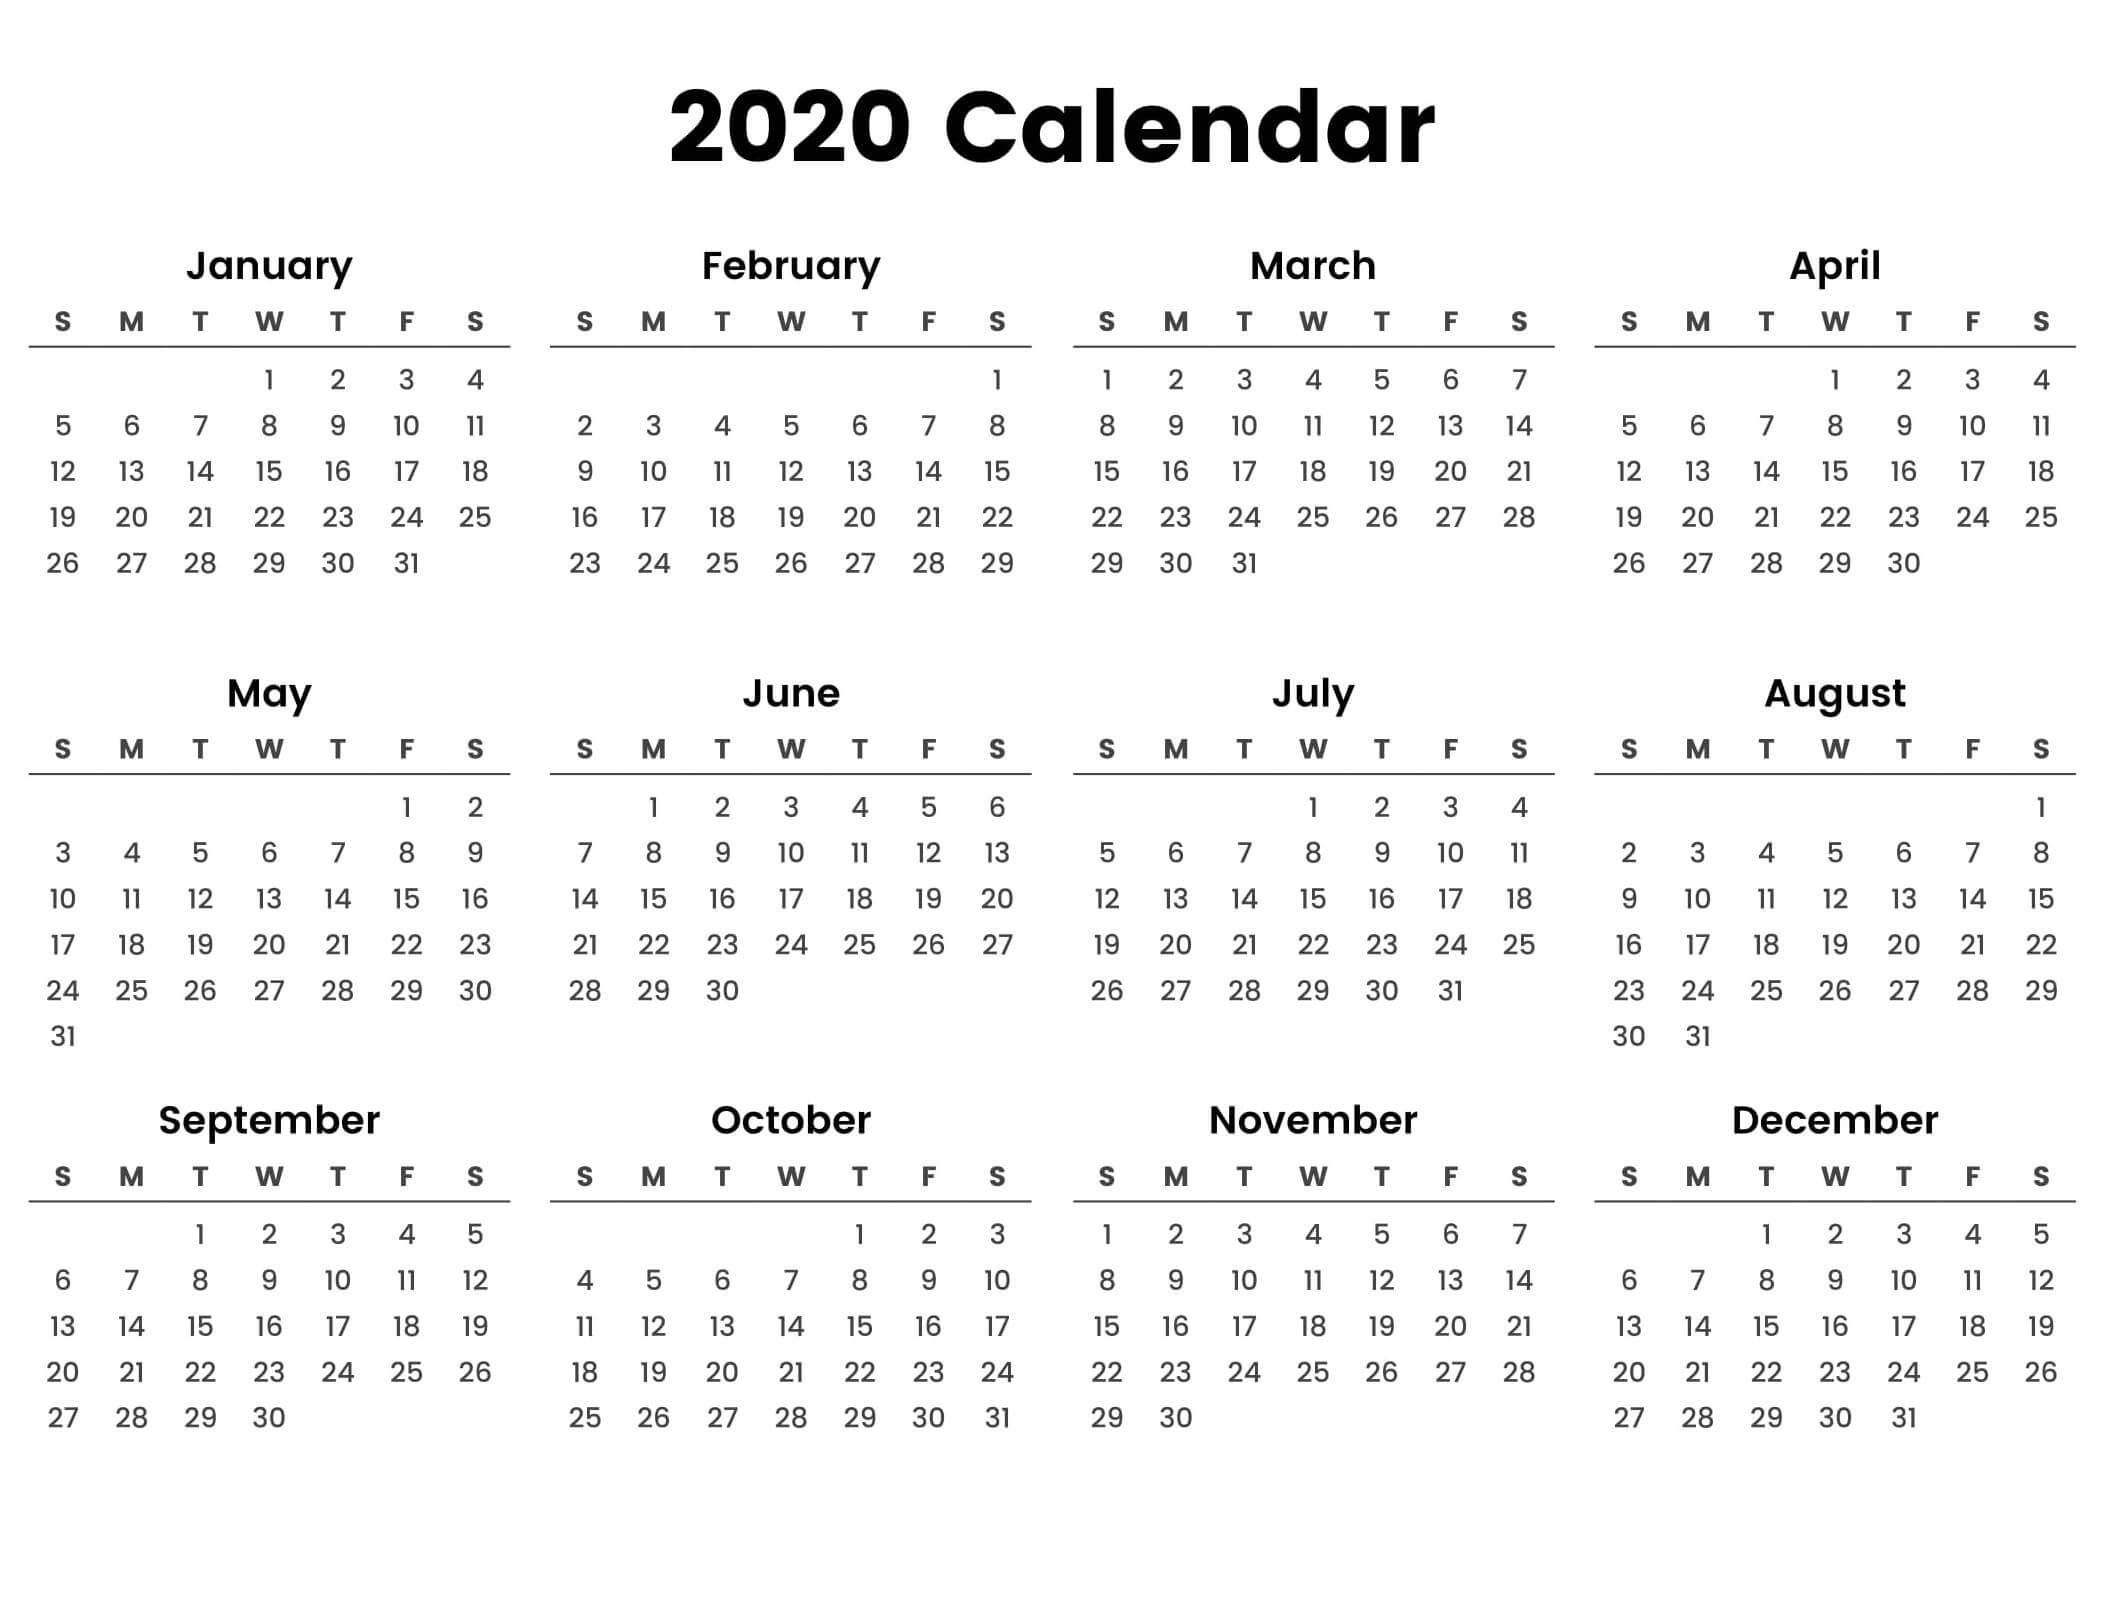 Large Yearly Calendar 2020 With Notes Pdf - Set Your Plan with Free 2020 Year At A Glance Calendar